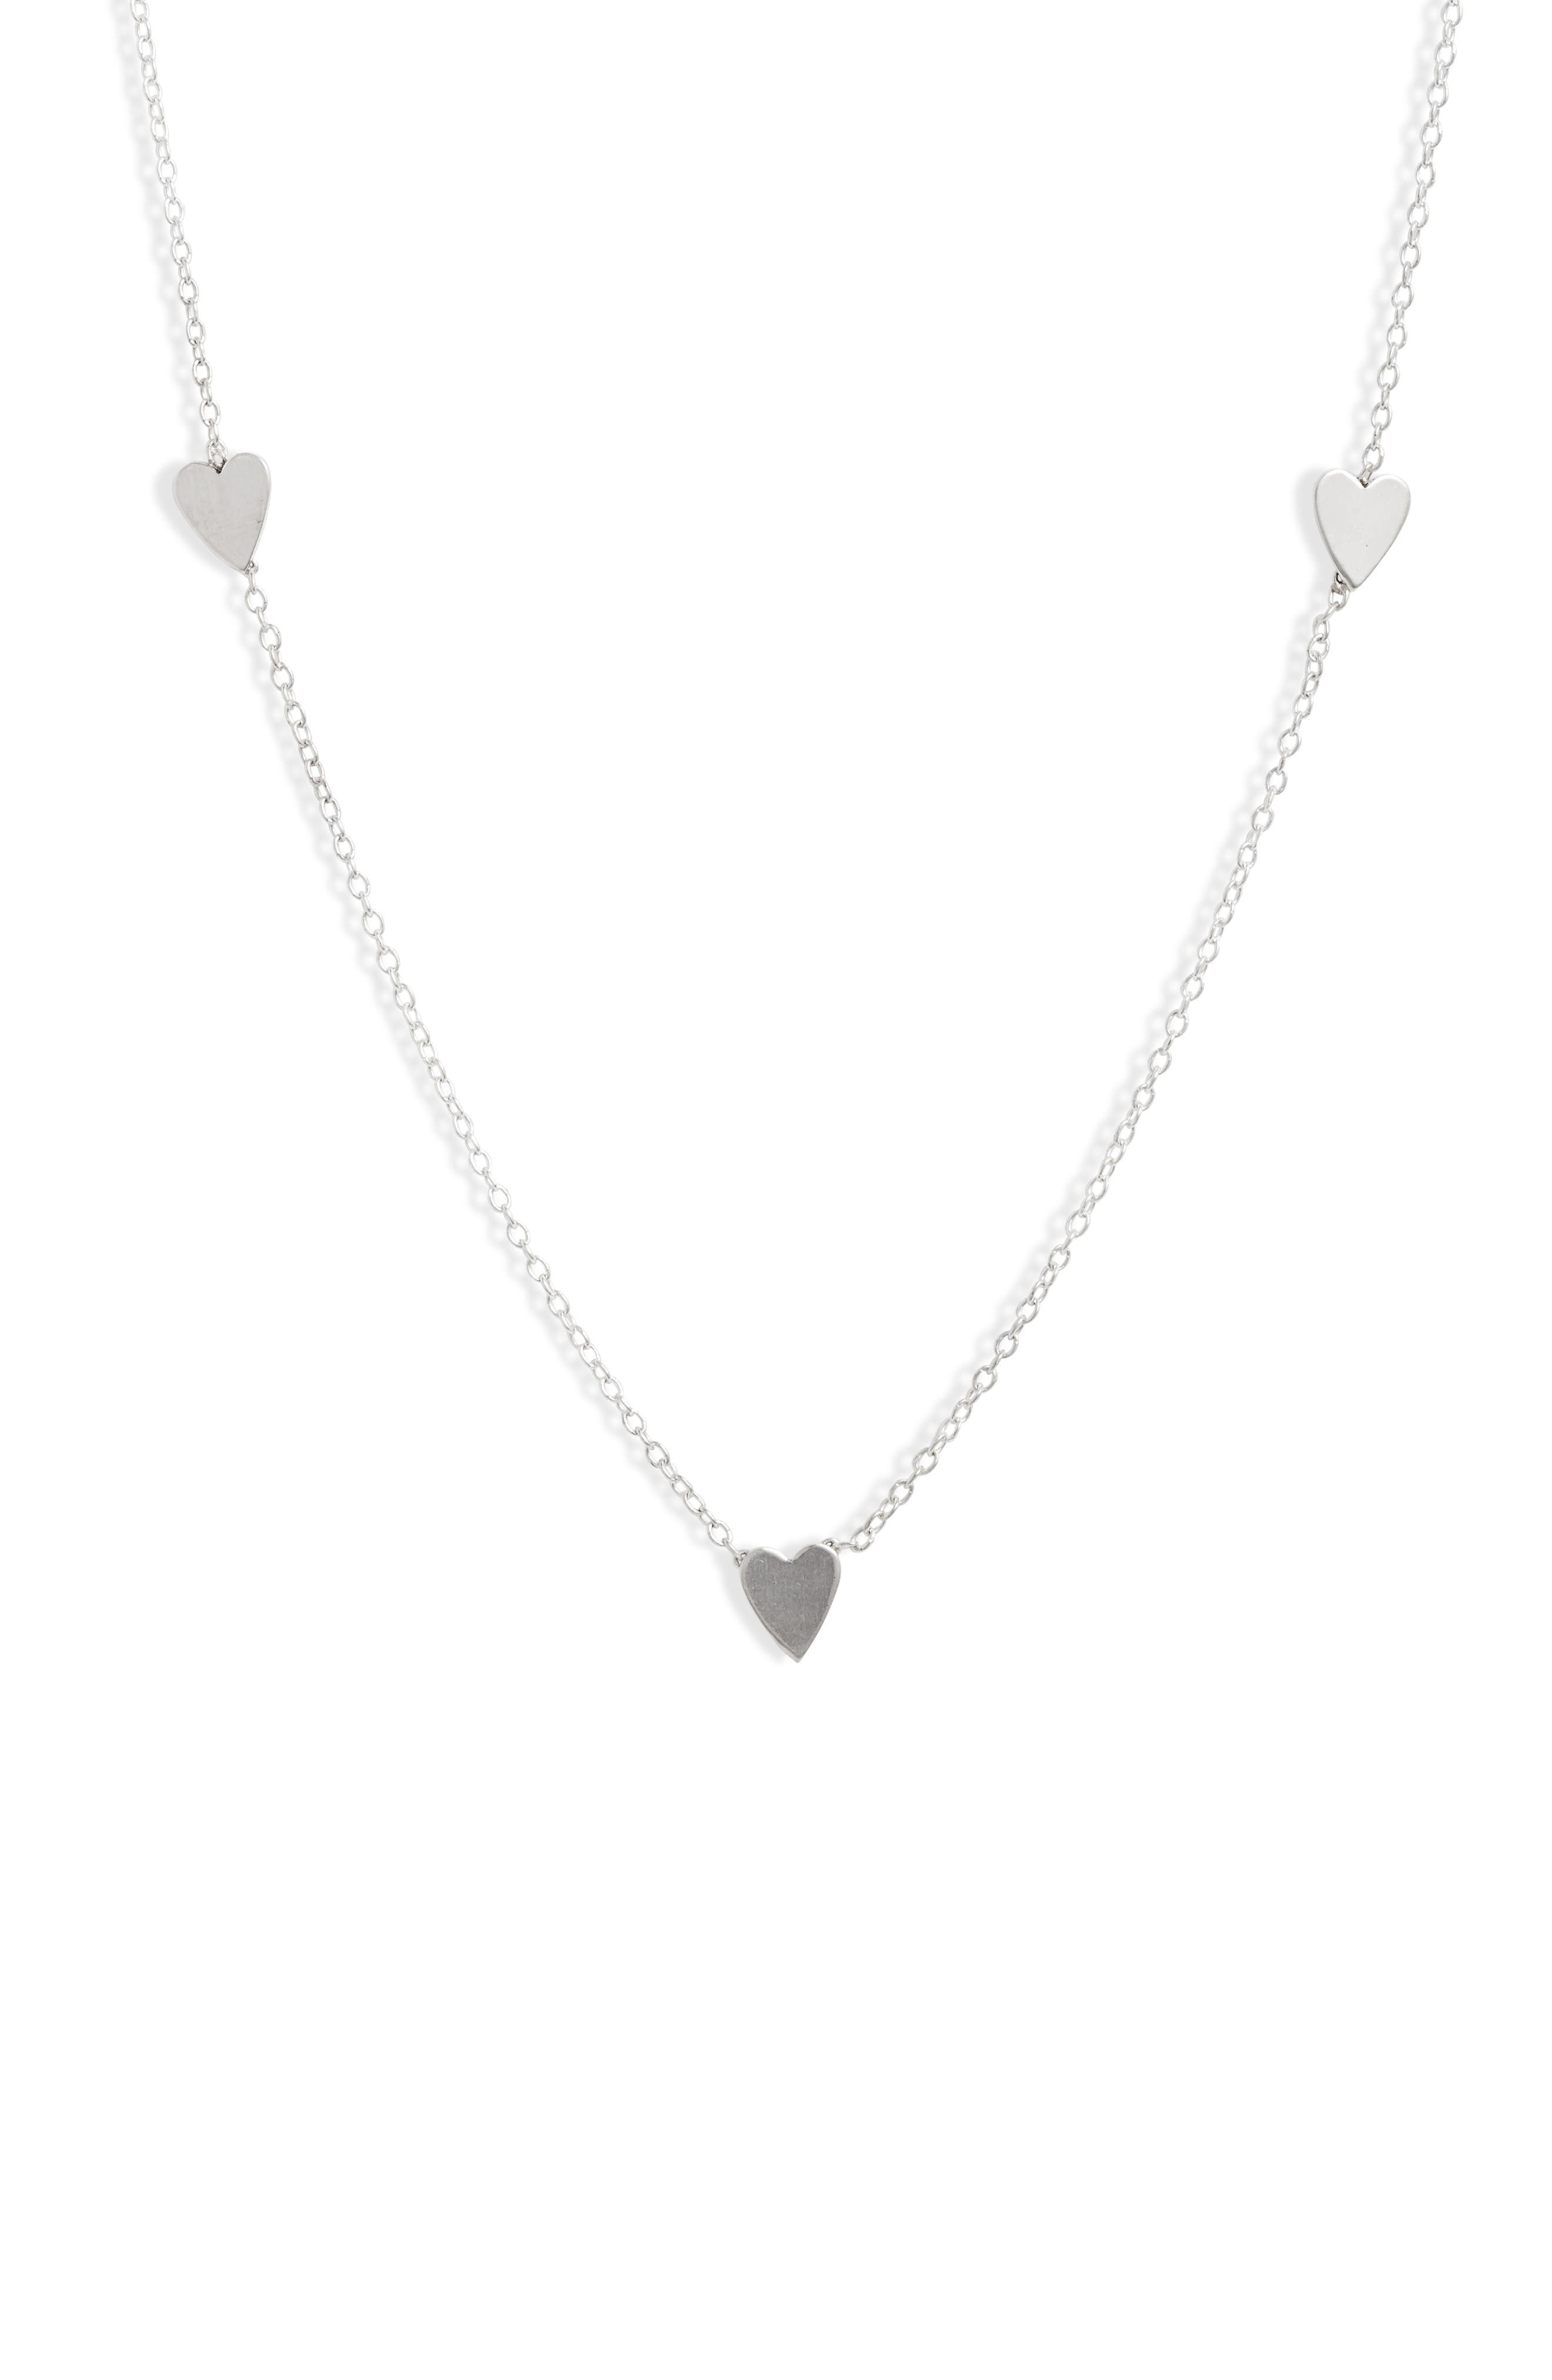 Three hearts pepper this delicate chain necklace that makes a sweet, understated accessory when worn solo, or a swoon-worthy beauty when layered. Style Name: Set & Stones Amy Heart Necklace. Style Number: 5966482. Available in stores.